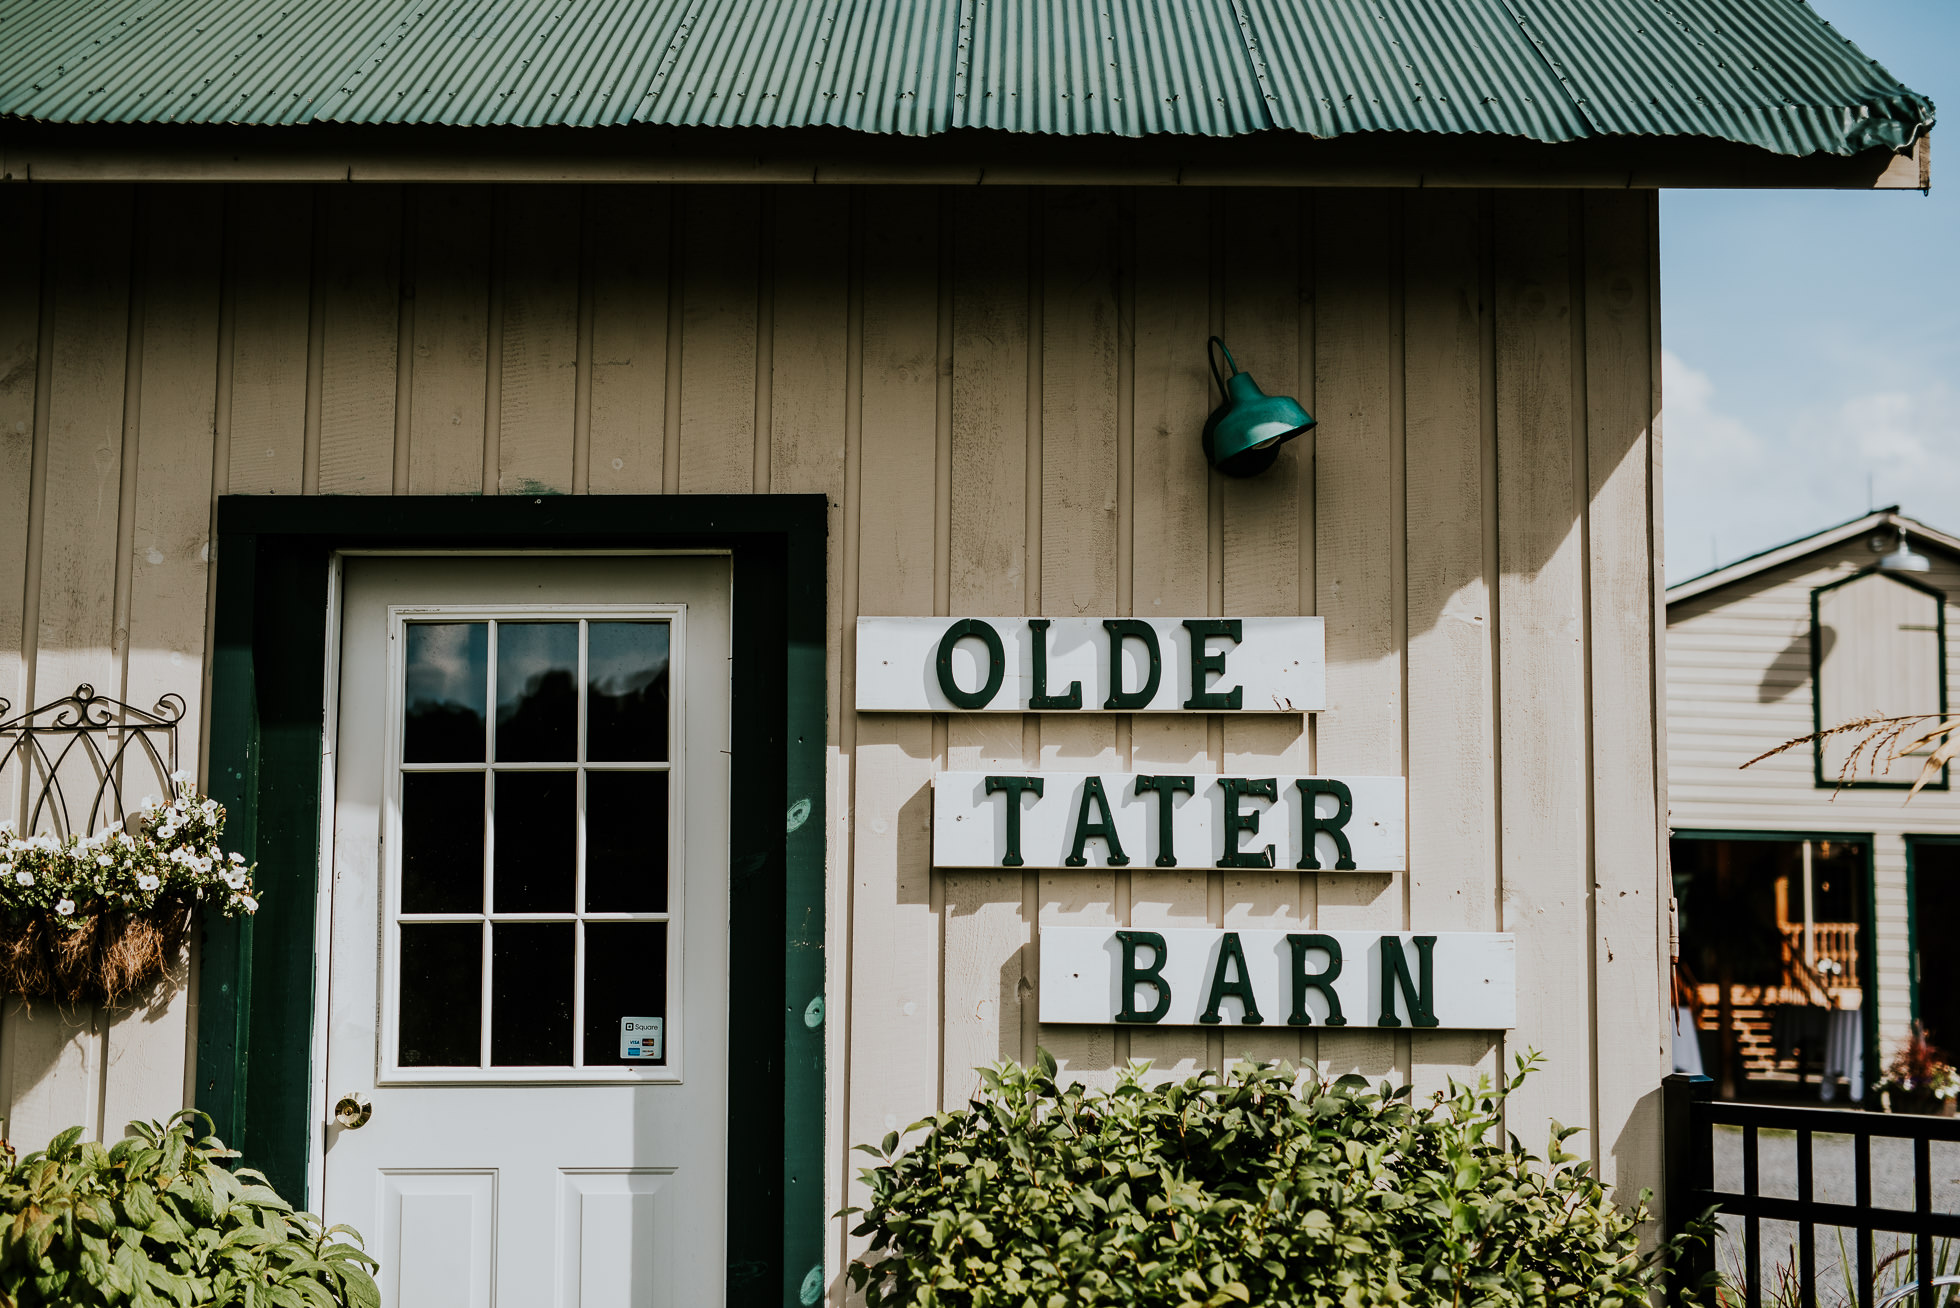 barn entrance at olde tater barn wedding in central bridge, ny photographed by traverse the tides